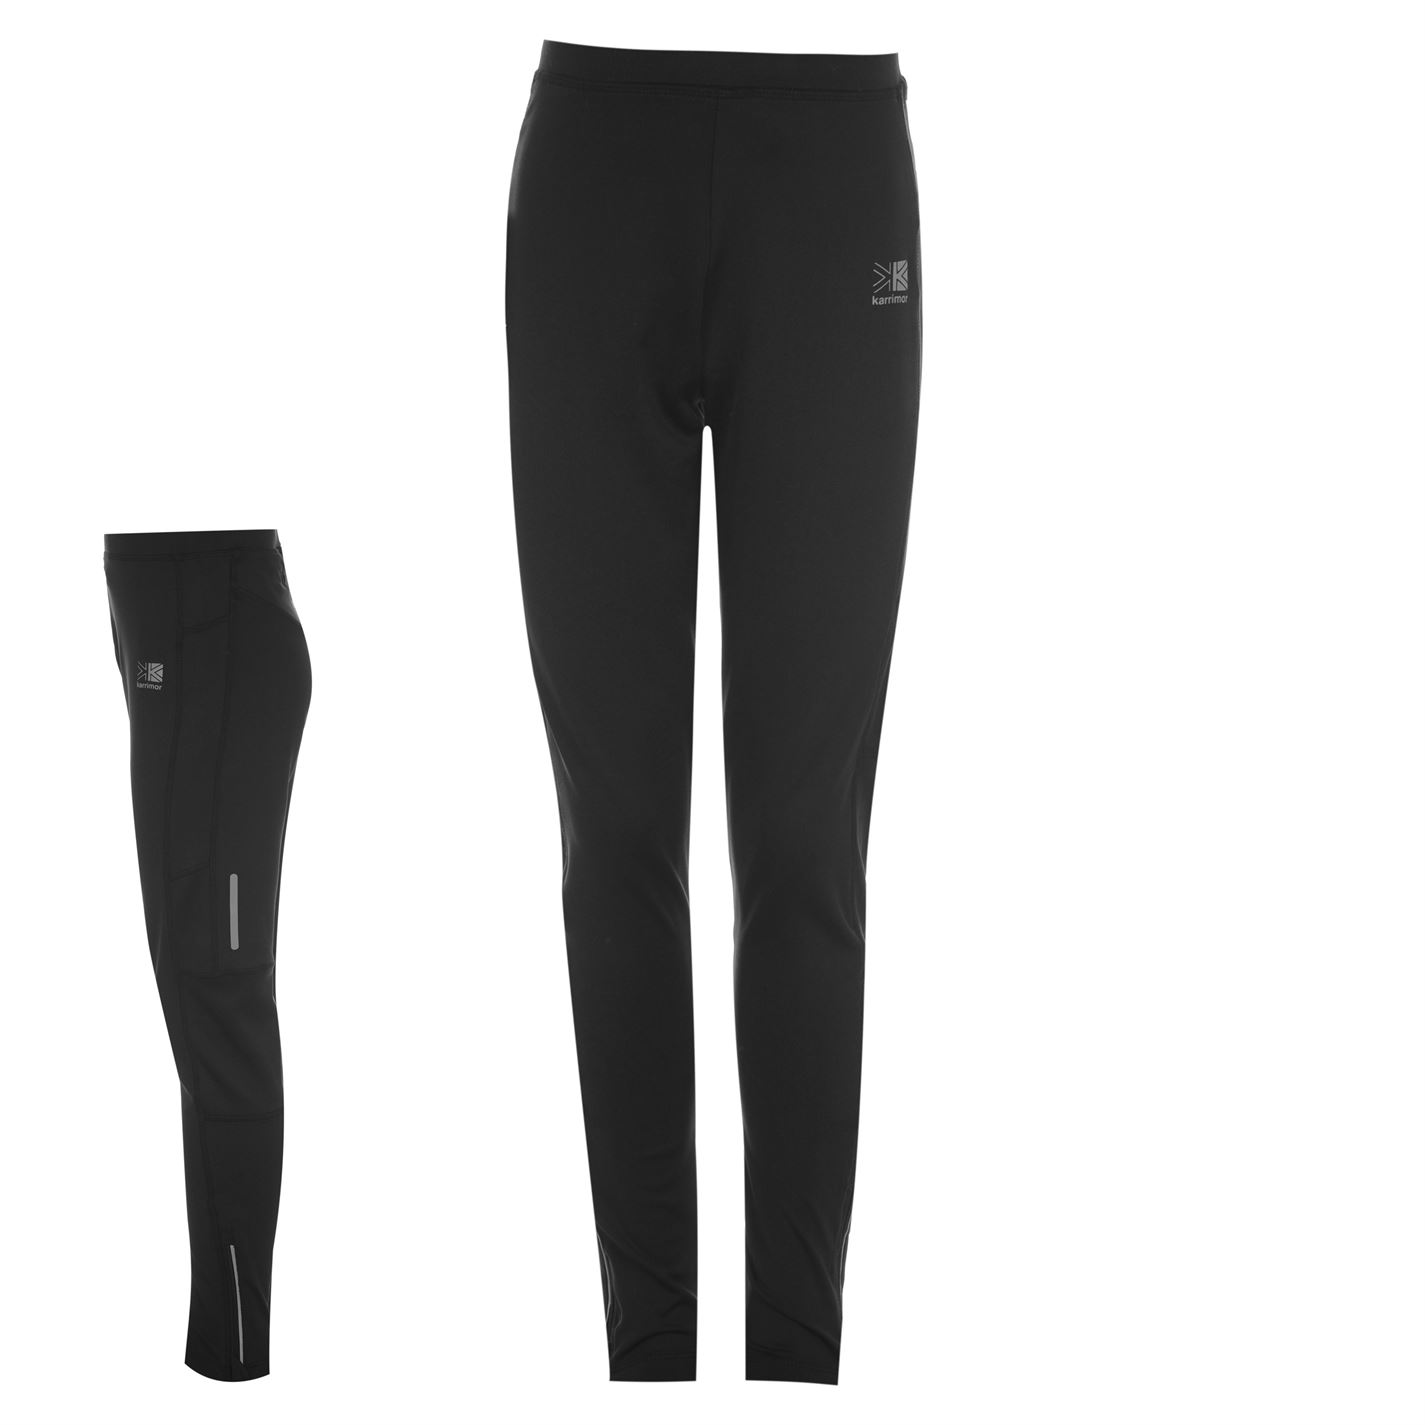 W8027 Karrimor Running Tights Junior GETRY 13L